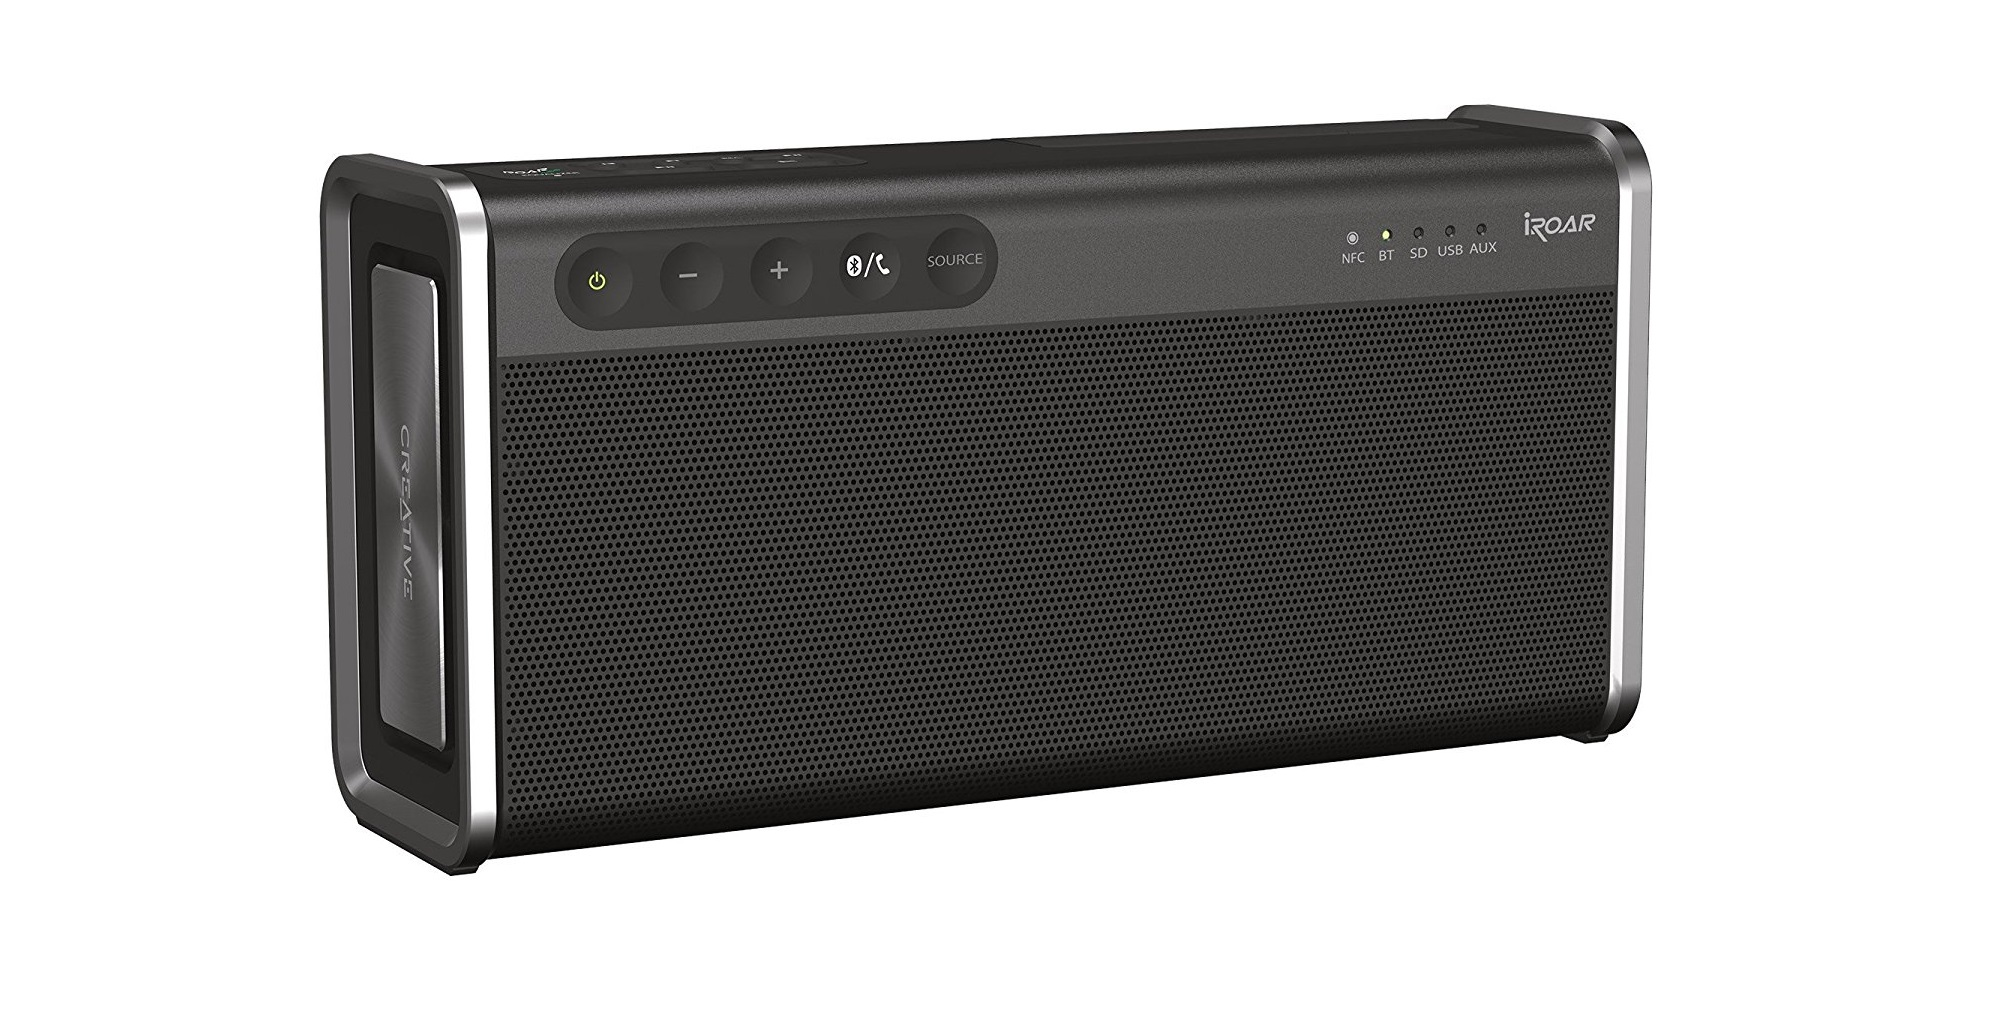 The Creative Iroar Go Is A Do It All Bluetooth Speaker Notebook 12716693011 Portable Speakers